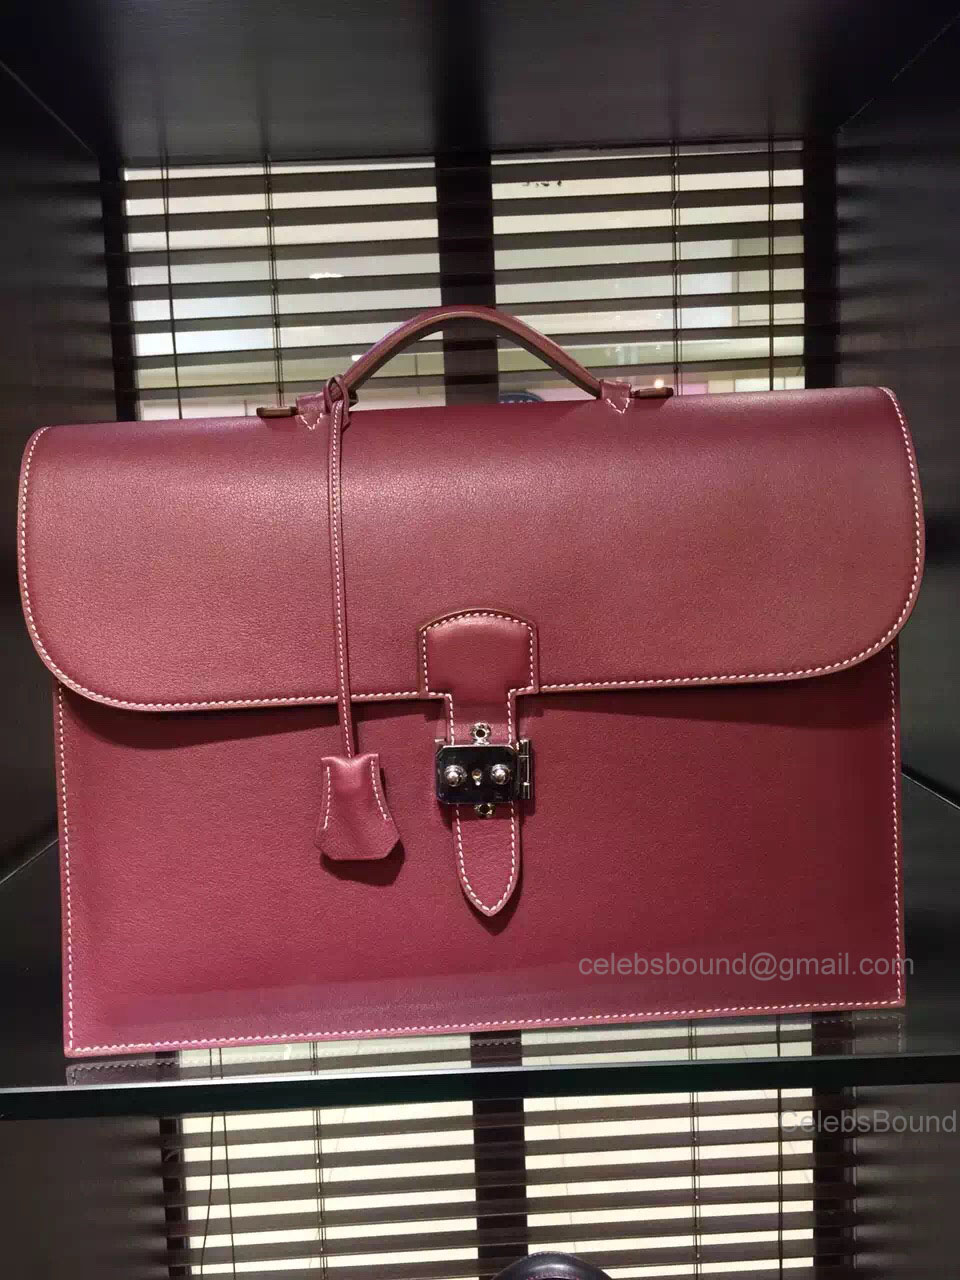 Hermes Sac a Depeche 41 Briefcase Bordeaux Swift Leather Handstitched